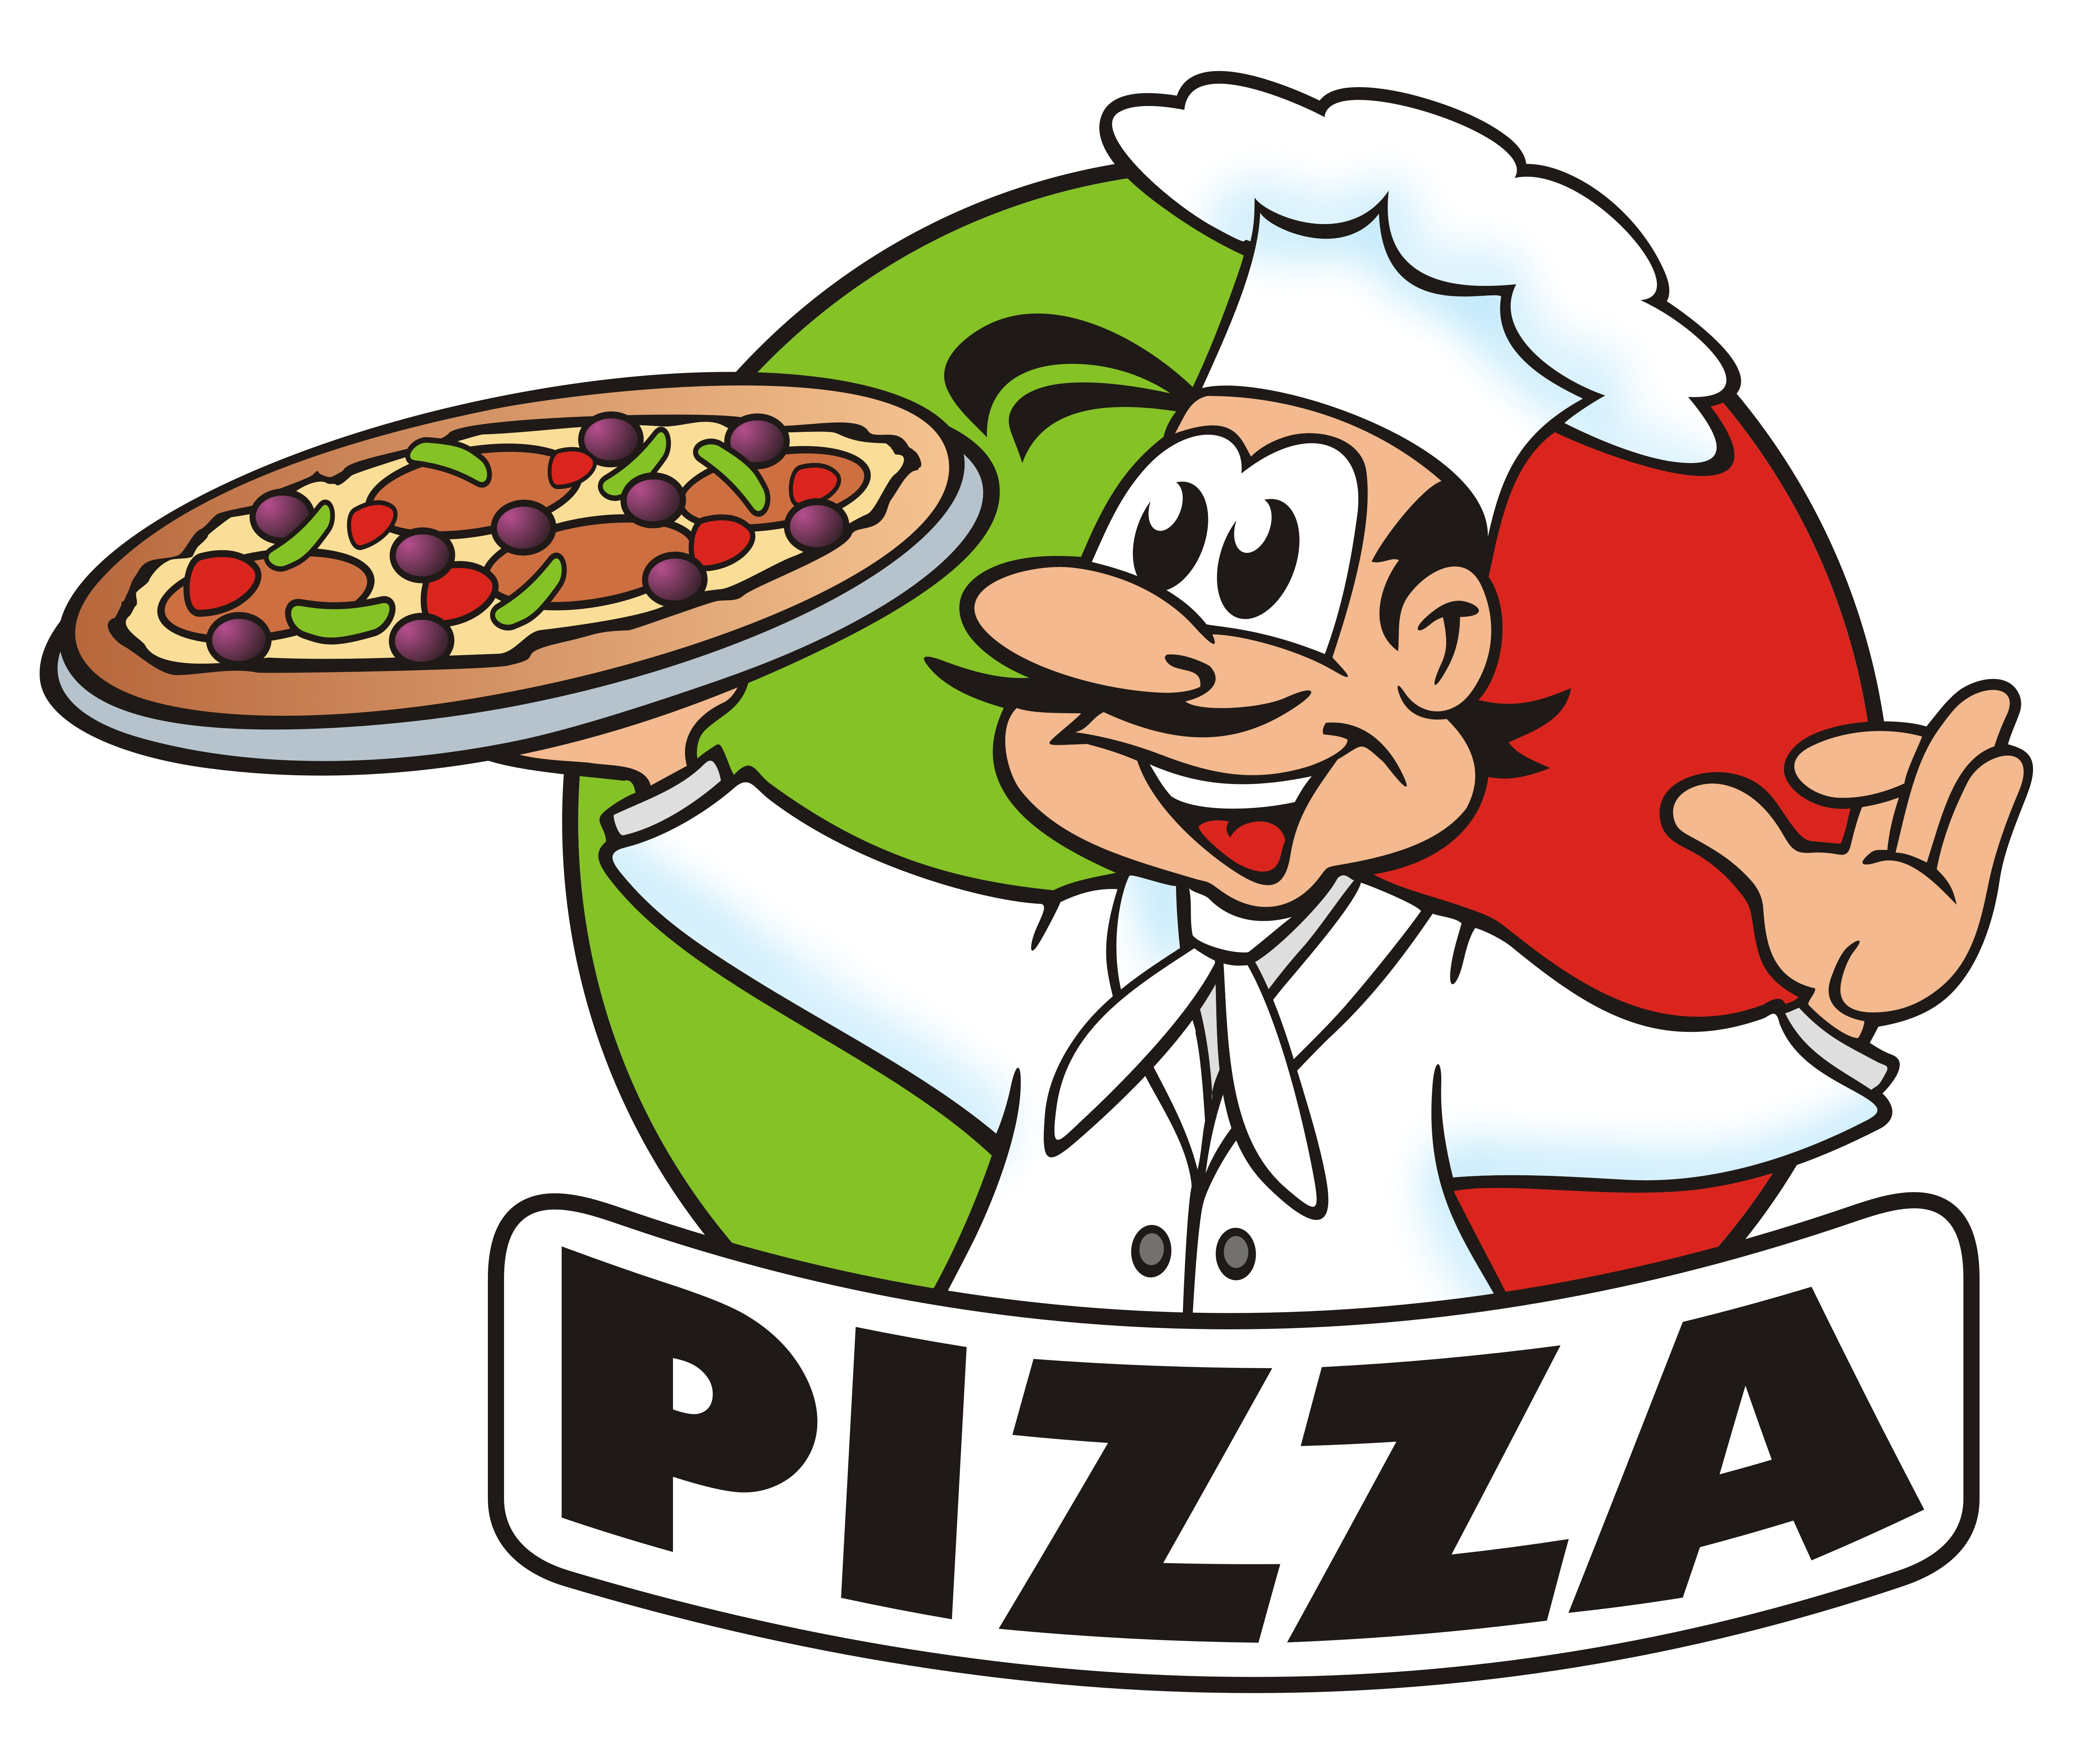 Pizza restaurant clipart.